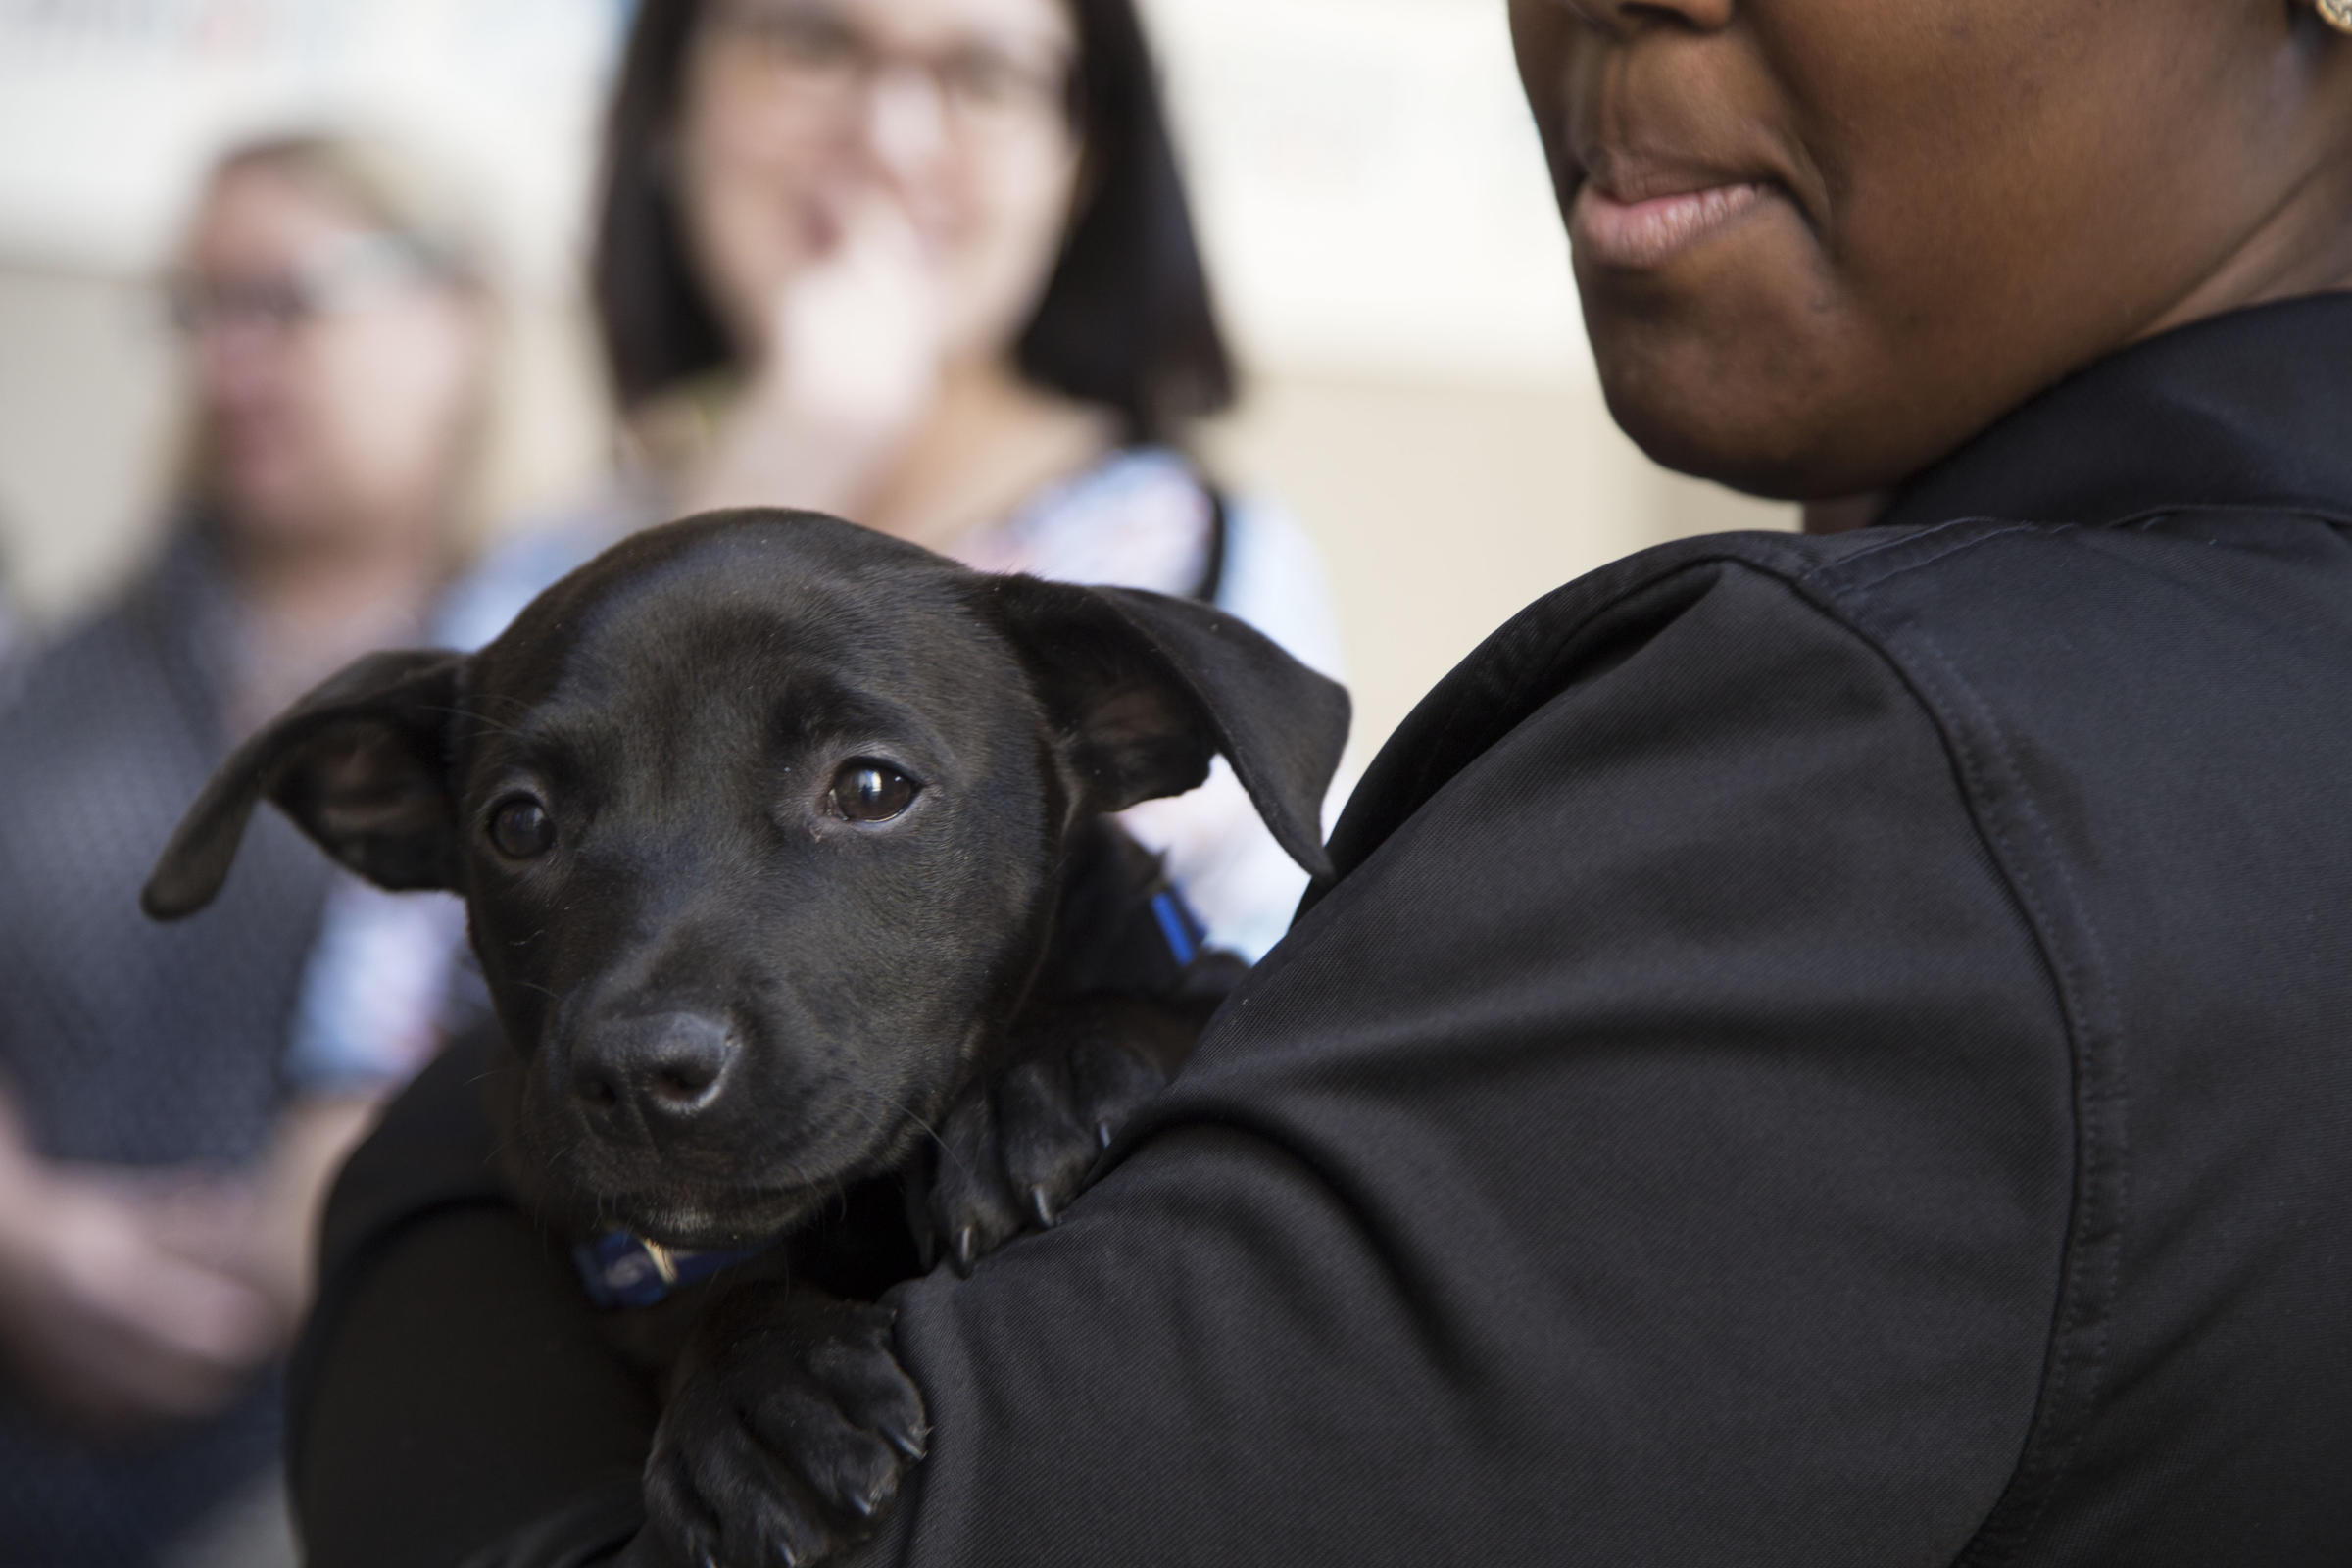 Puppies On Demand Uber Delivers Adoptable Dogs From Pa Humane